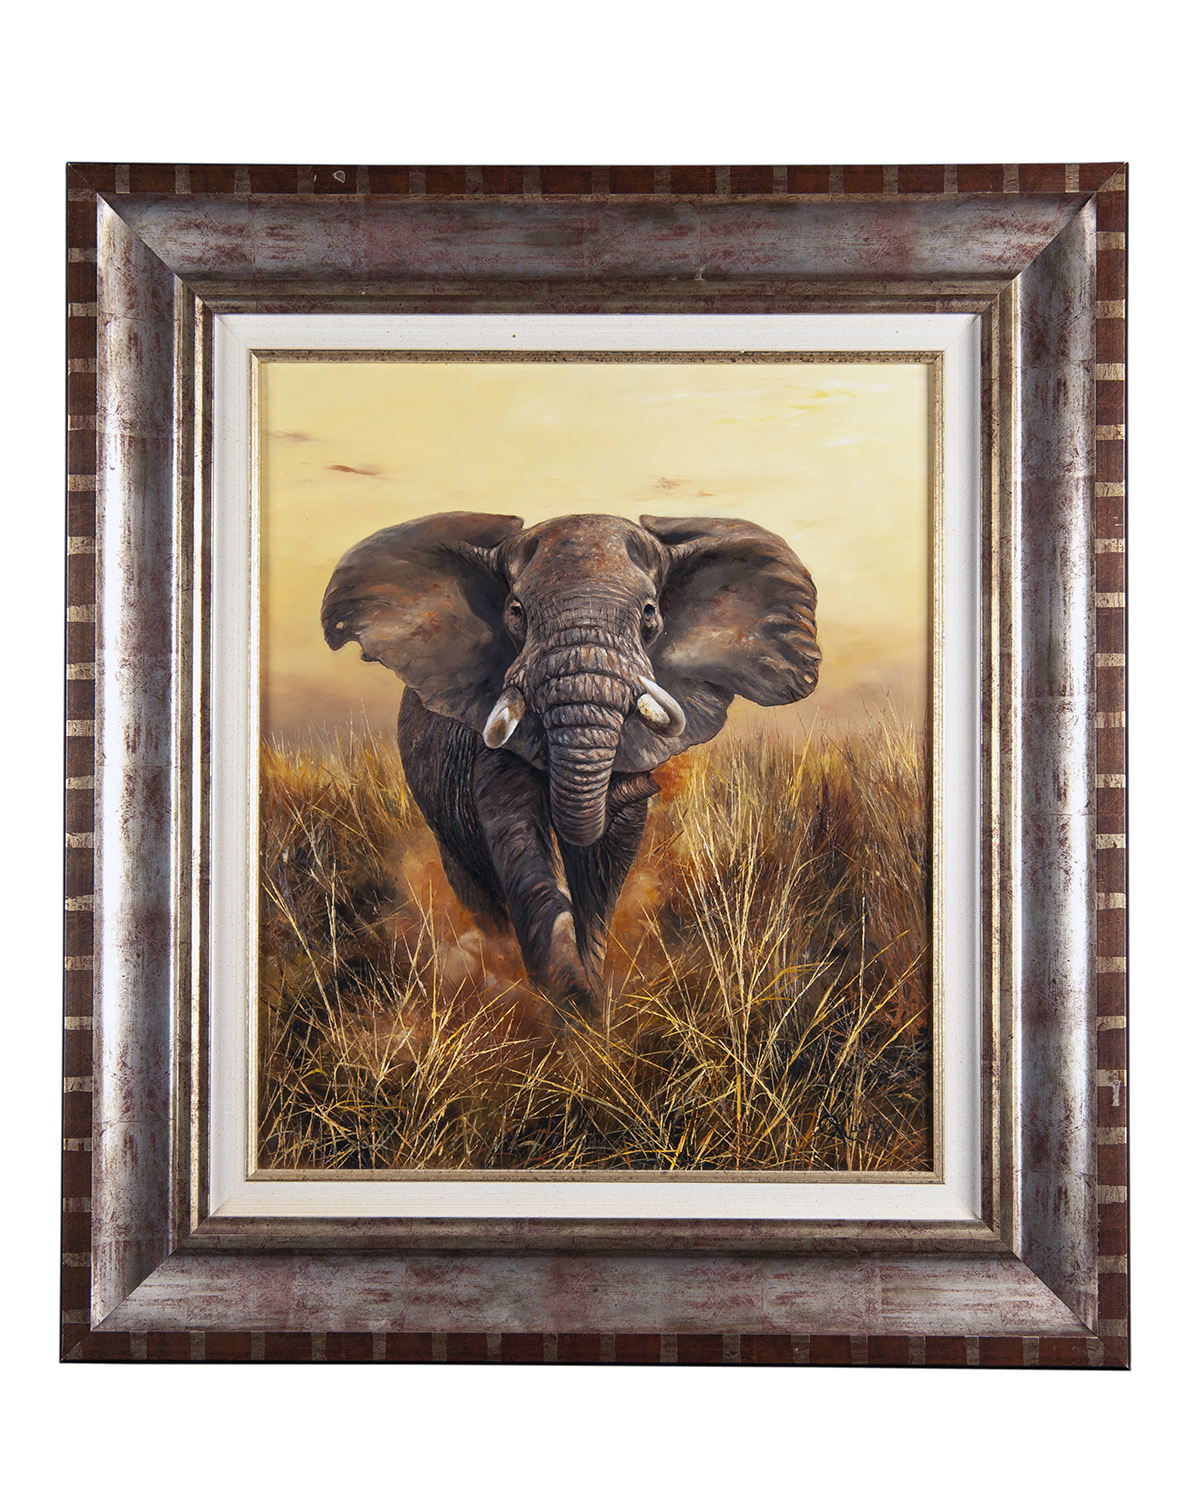 Lot 104 - PIERRE COUZY AN ORIGINAL OIL ON CANVAS OF A CHARGING BULL ELEPHANT, signed by the artist, set in a